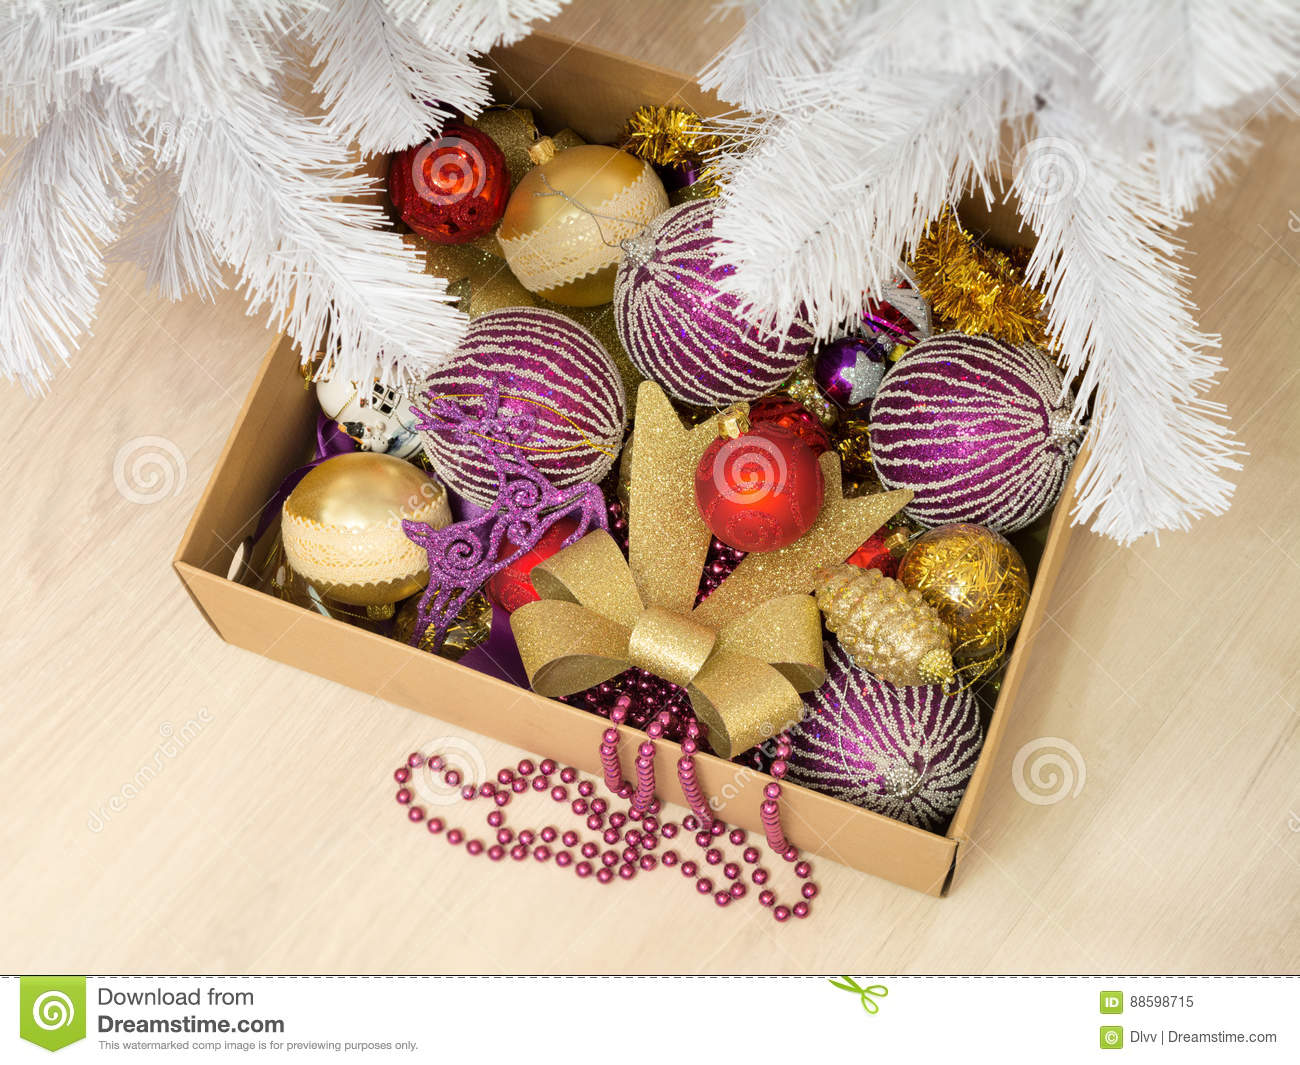 download cardboard box full of various christmas decorations and a bead garland stock image image - Cardboard Box Christmas Decorations